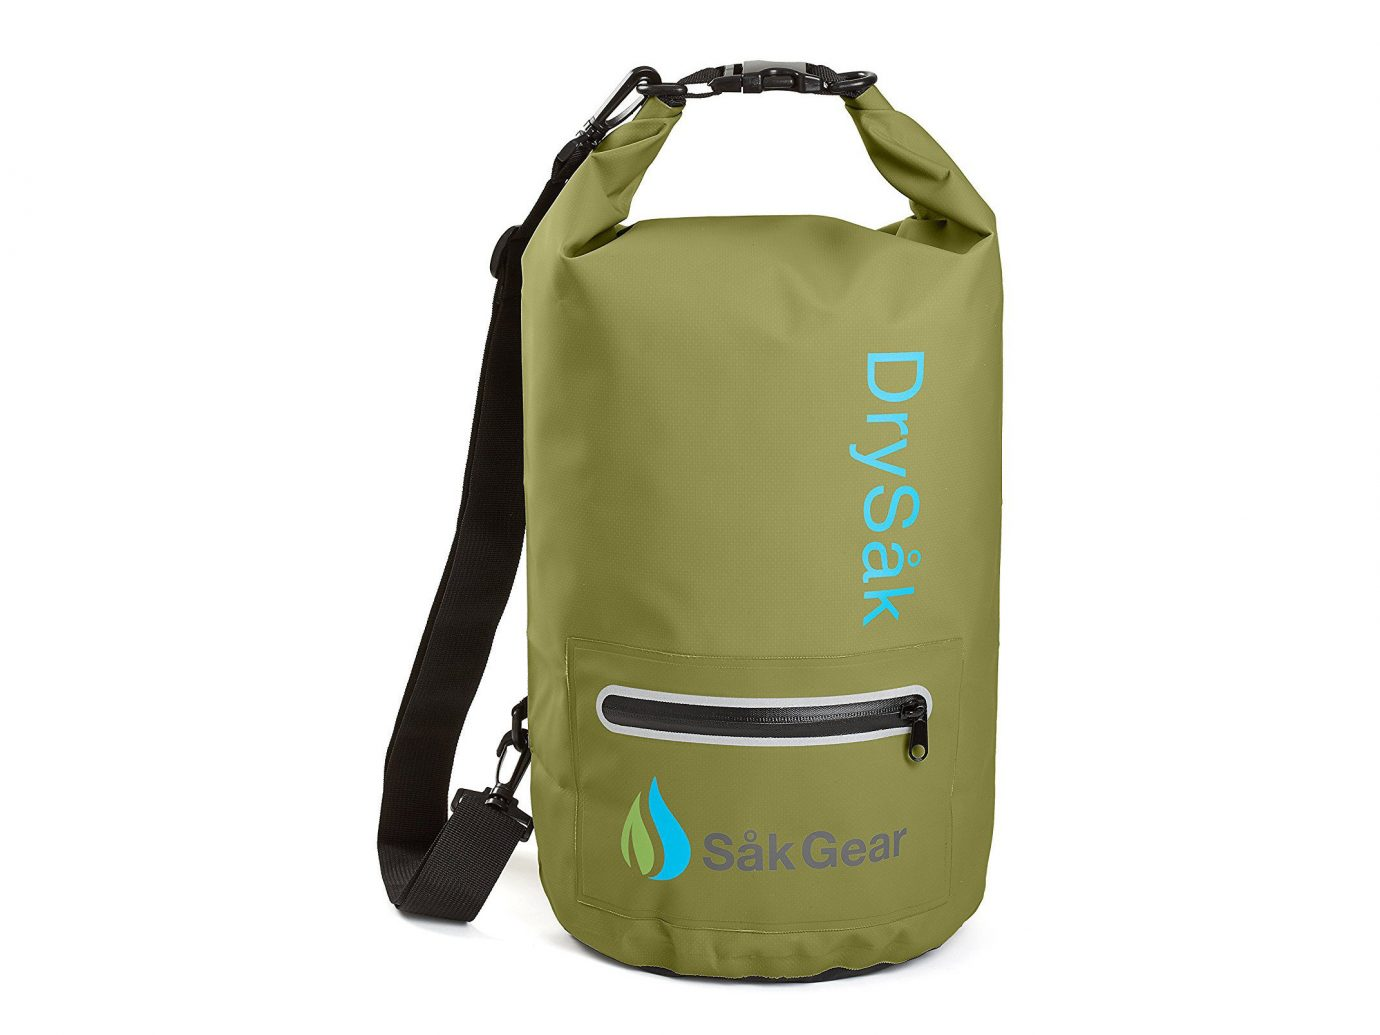 Travel Tips bag yellow product accessory product design shoulder bag backpack